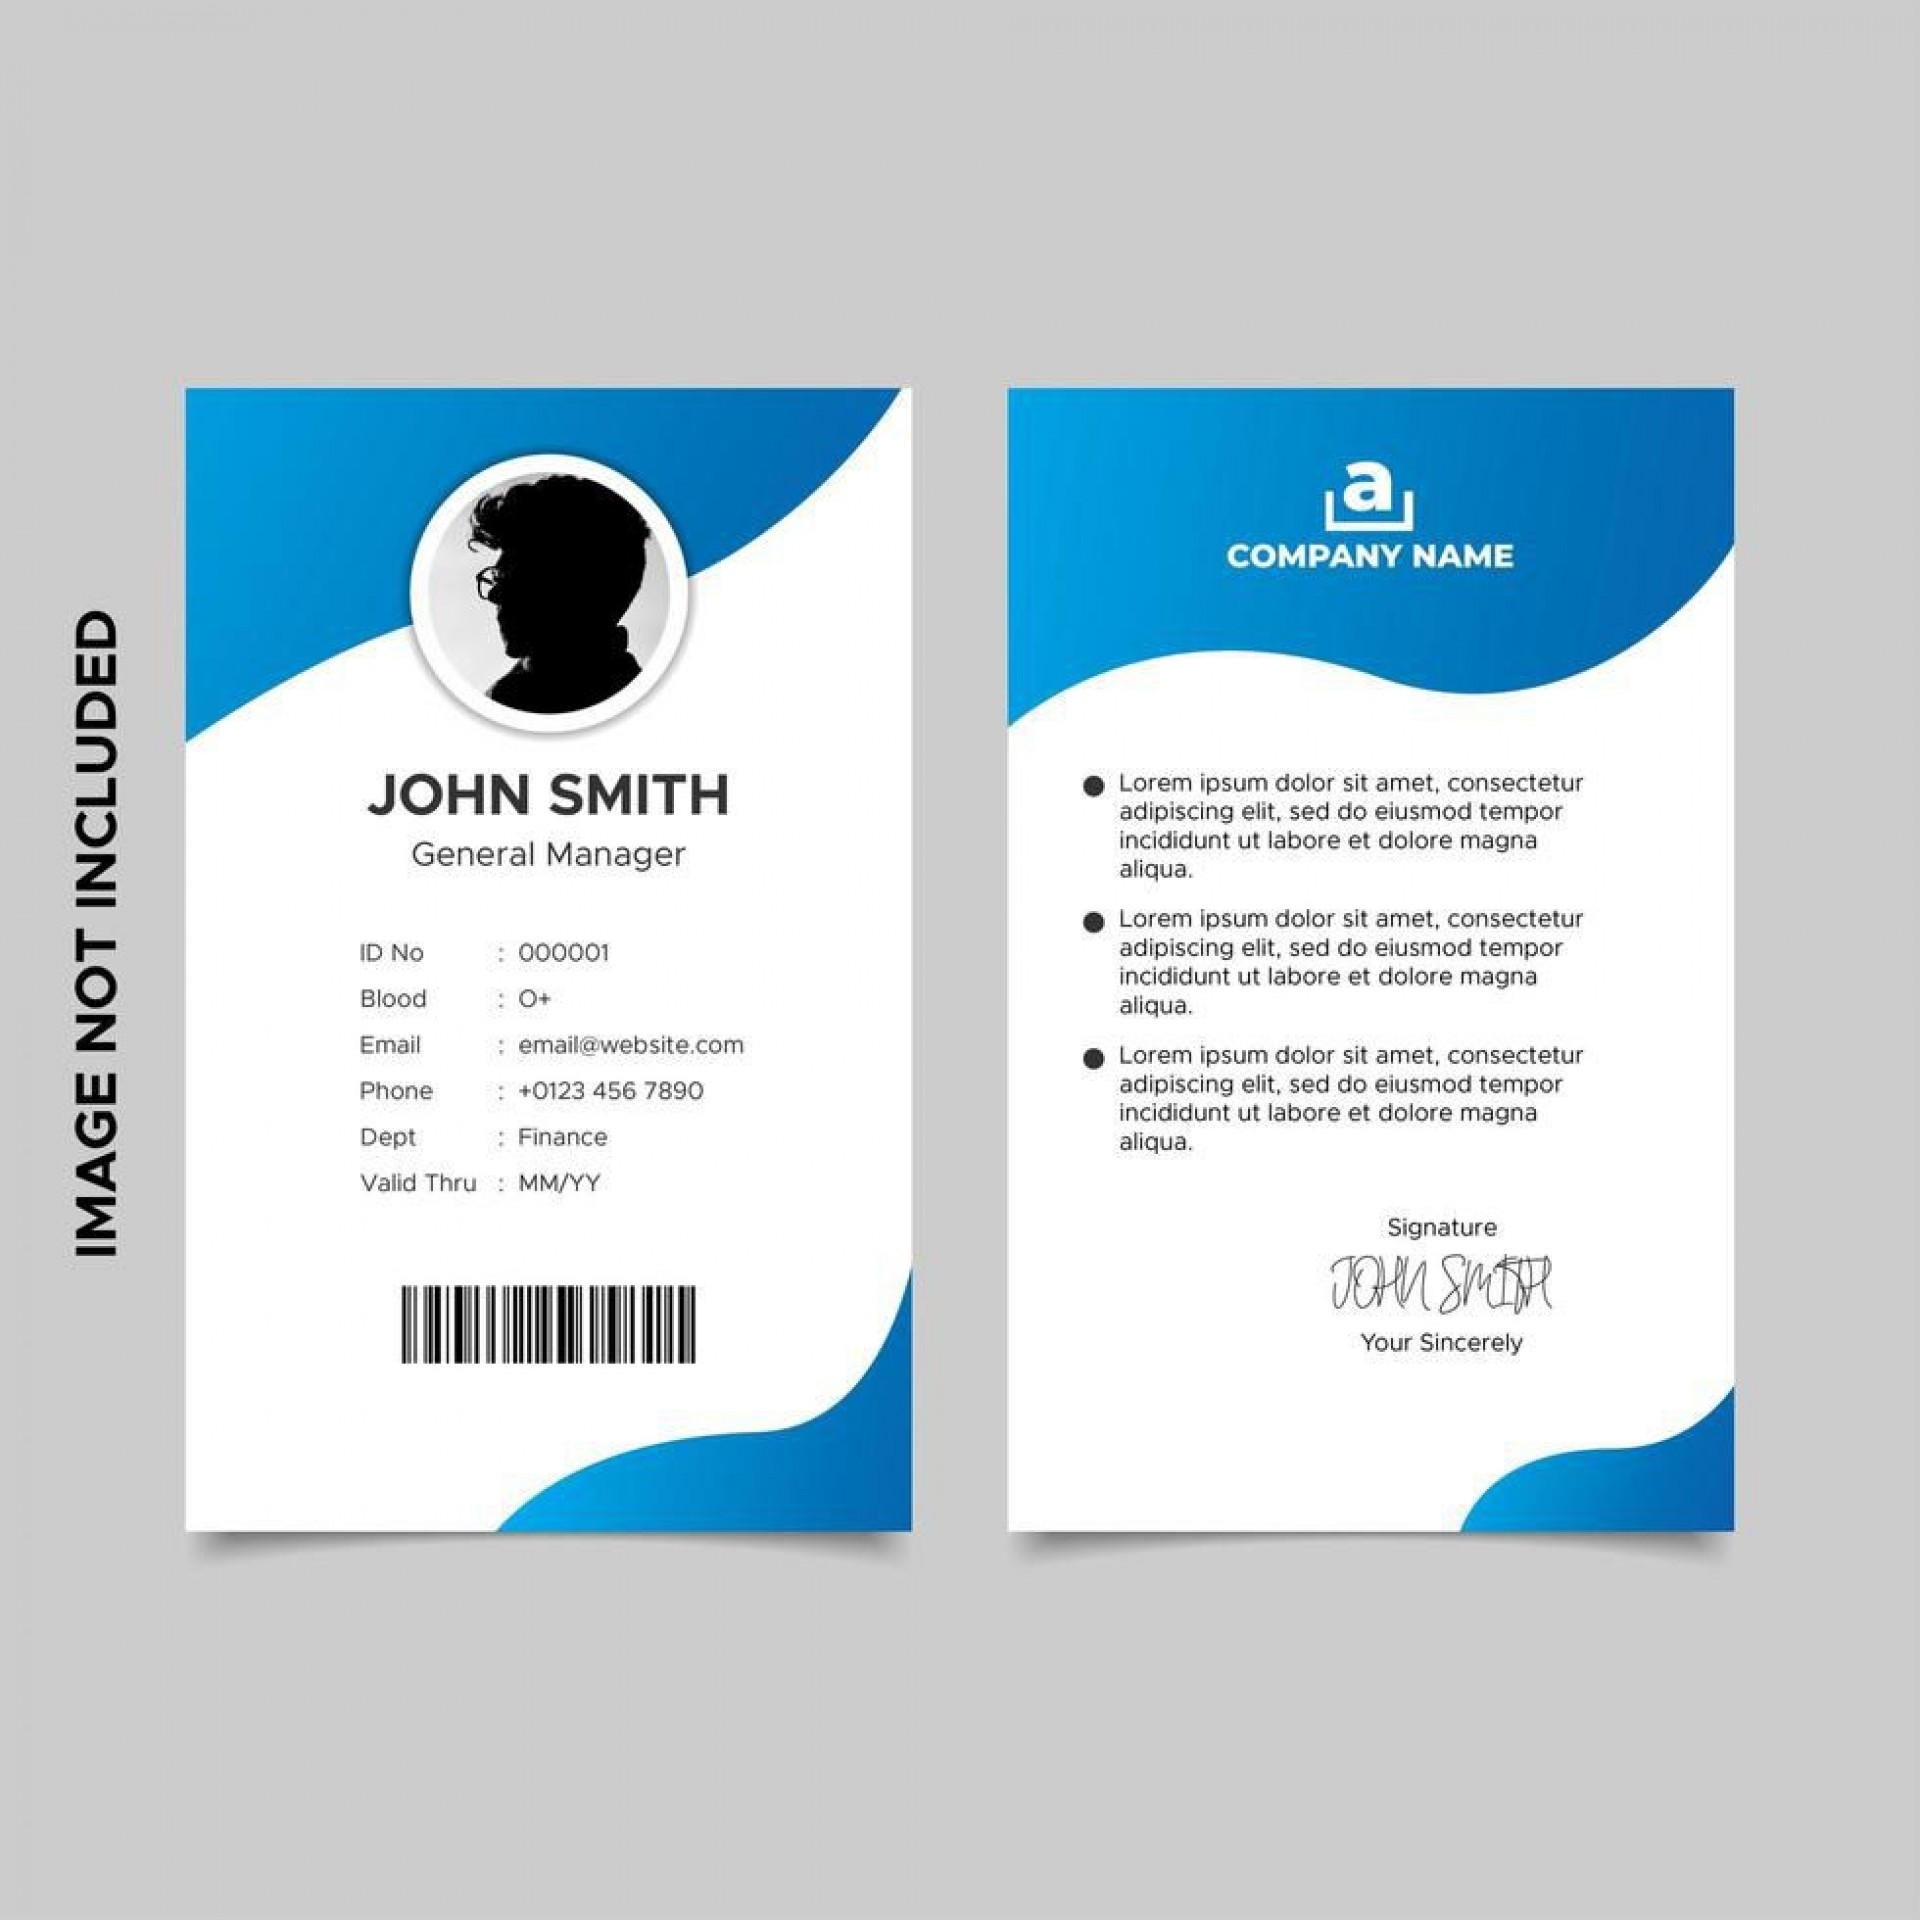 008 Fascinating Id Card Template Free High Definition  Download Pdf Design1920